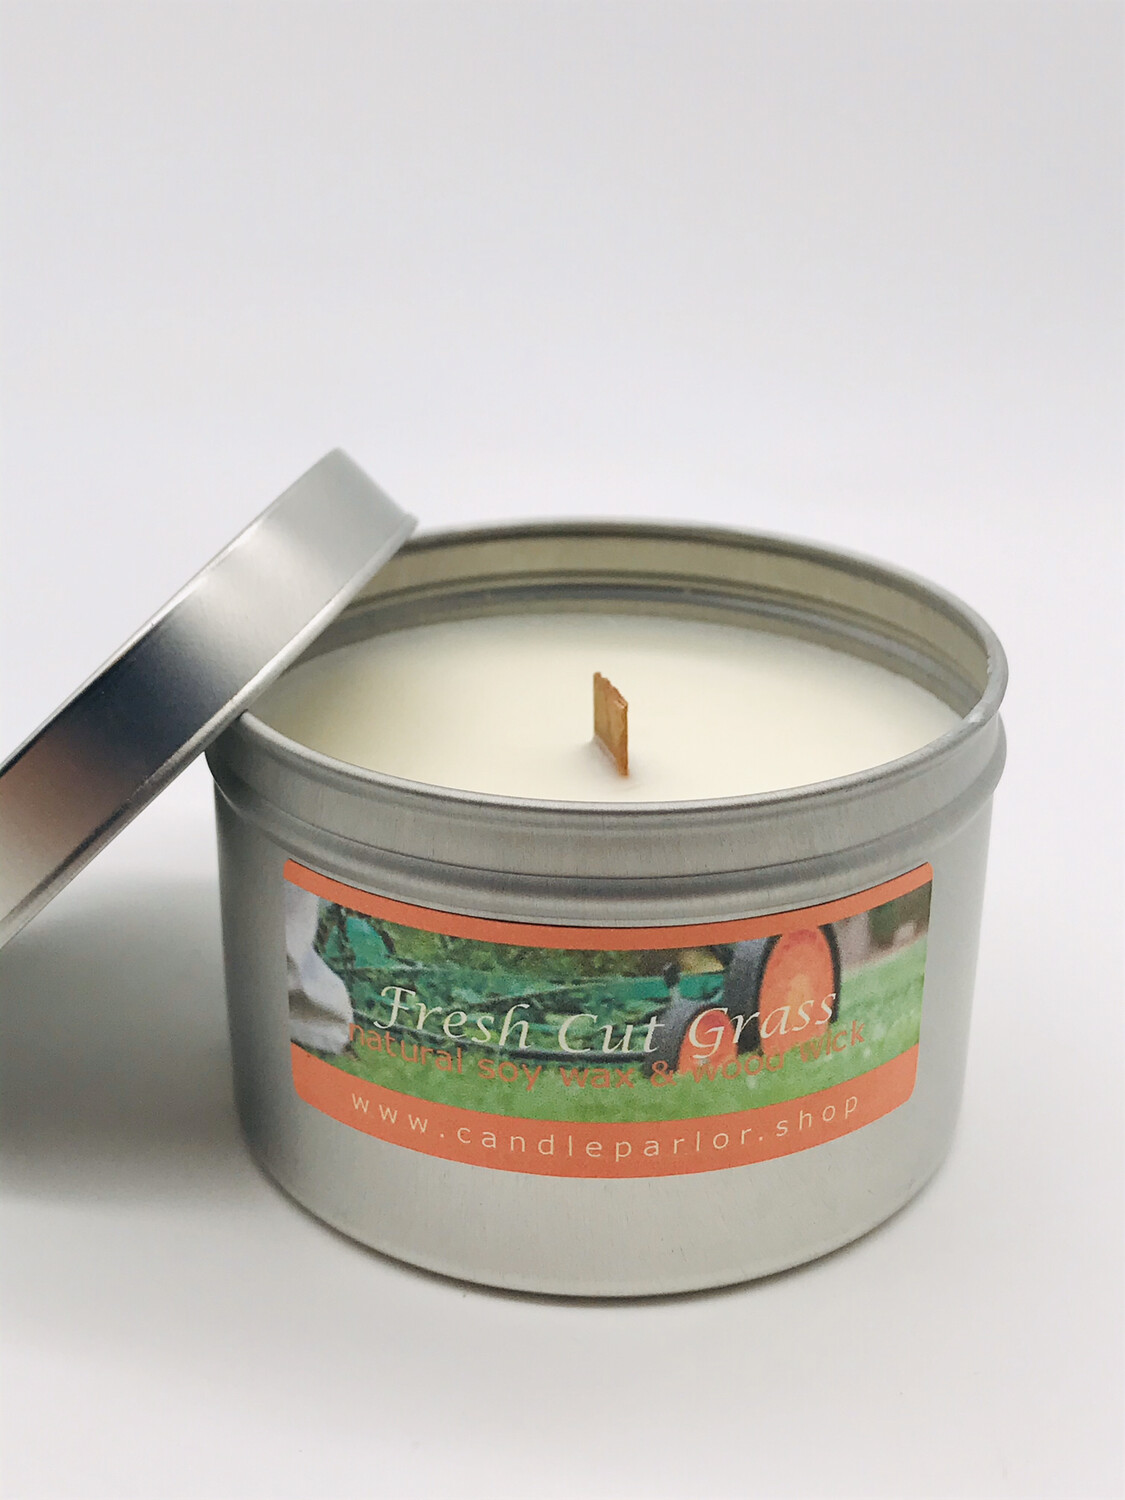 Fresh Cut Grass Scented Soy Wax Candle with Wood Wick, 6 oz Tin.